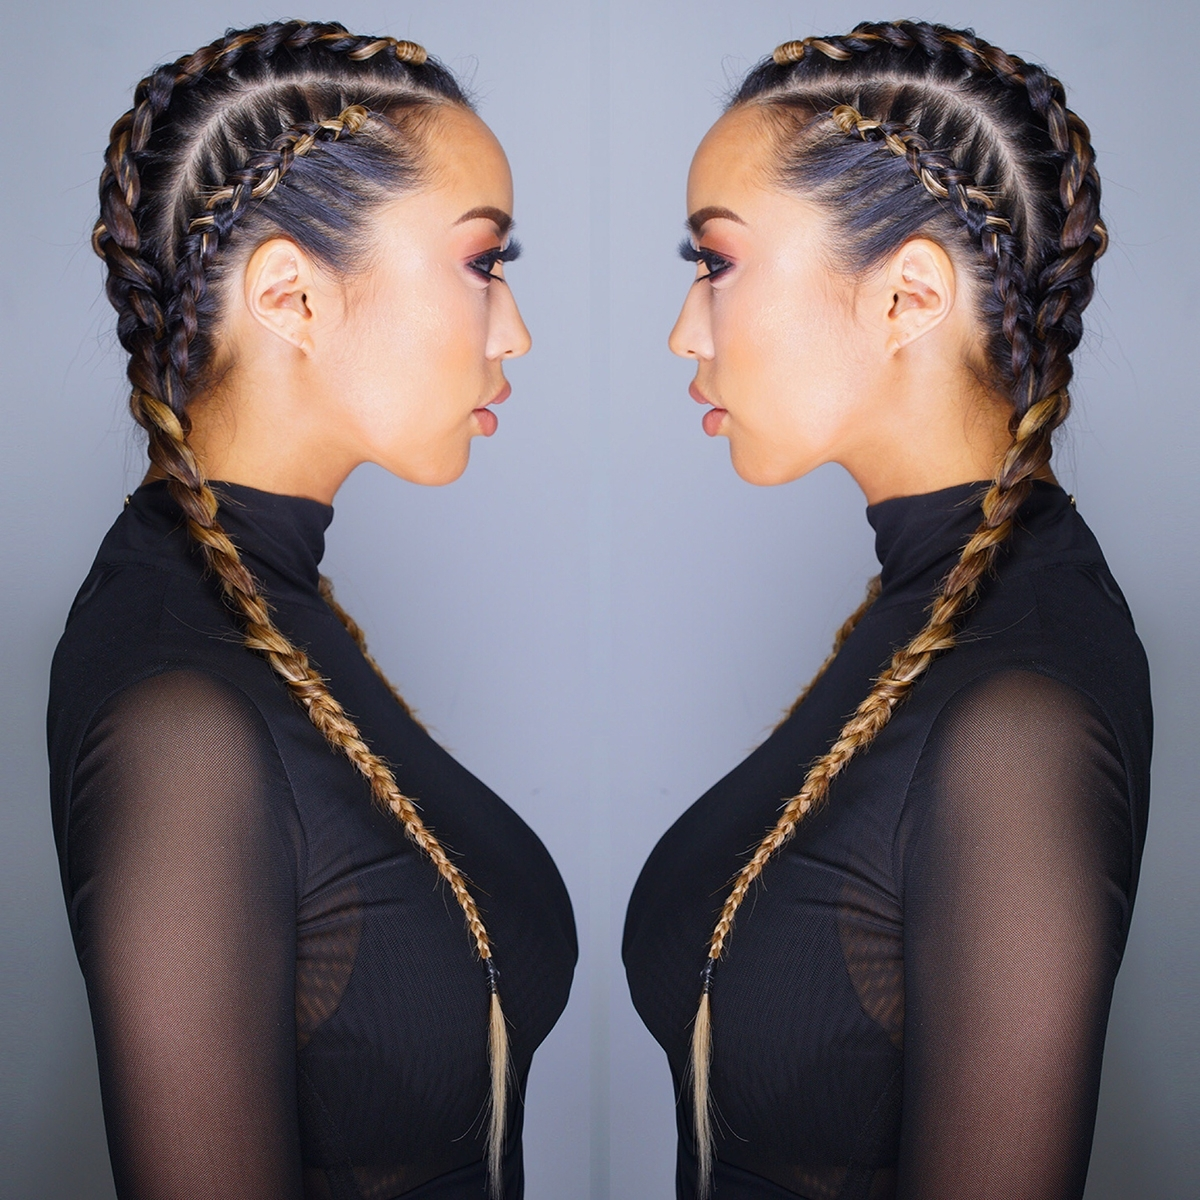 My Ciin In Preferred Intricate Boxer Braids Hairstyles (View 7 of 15)